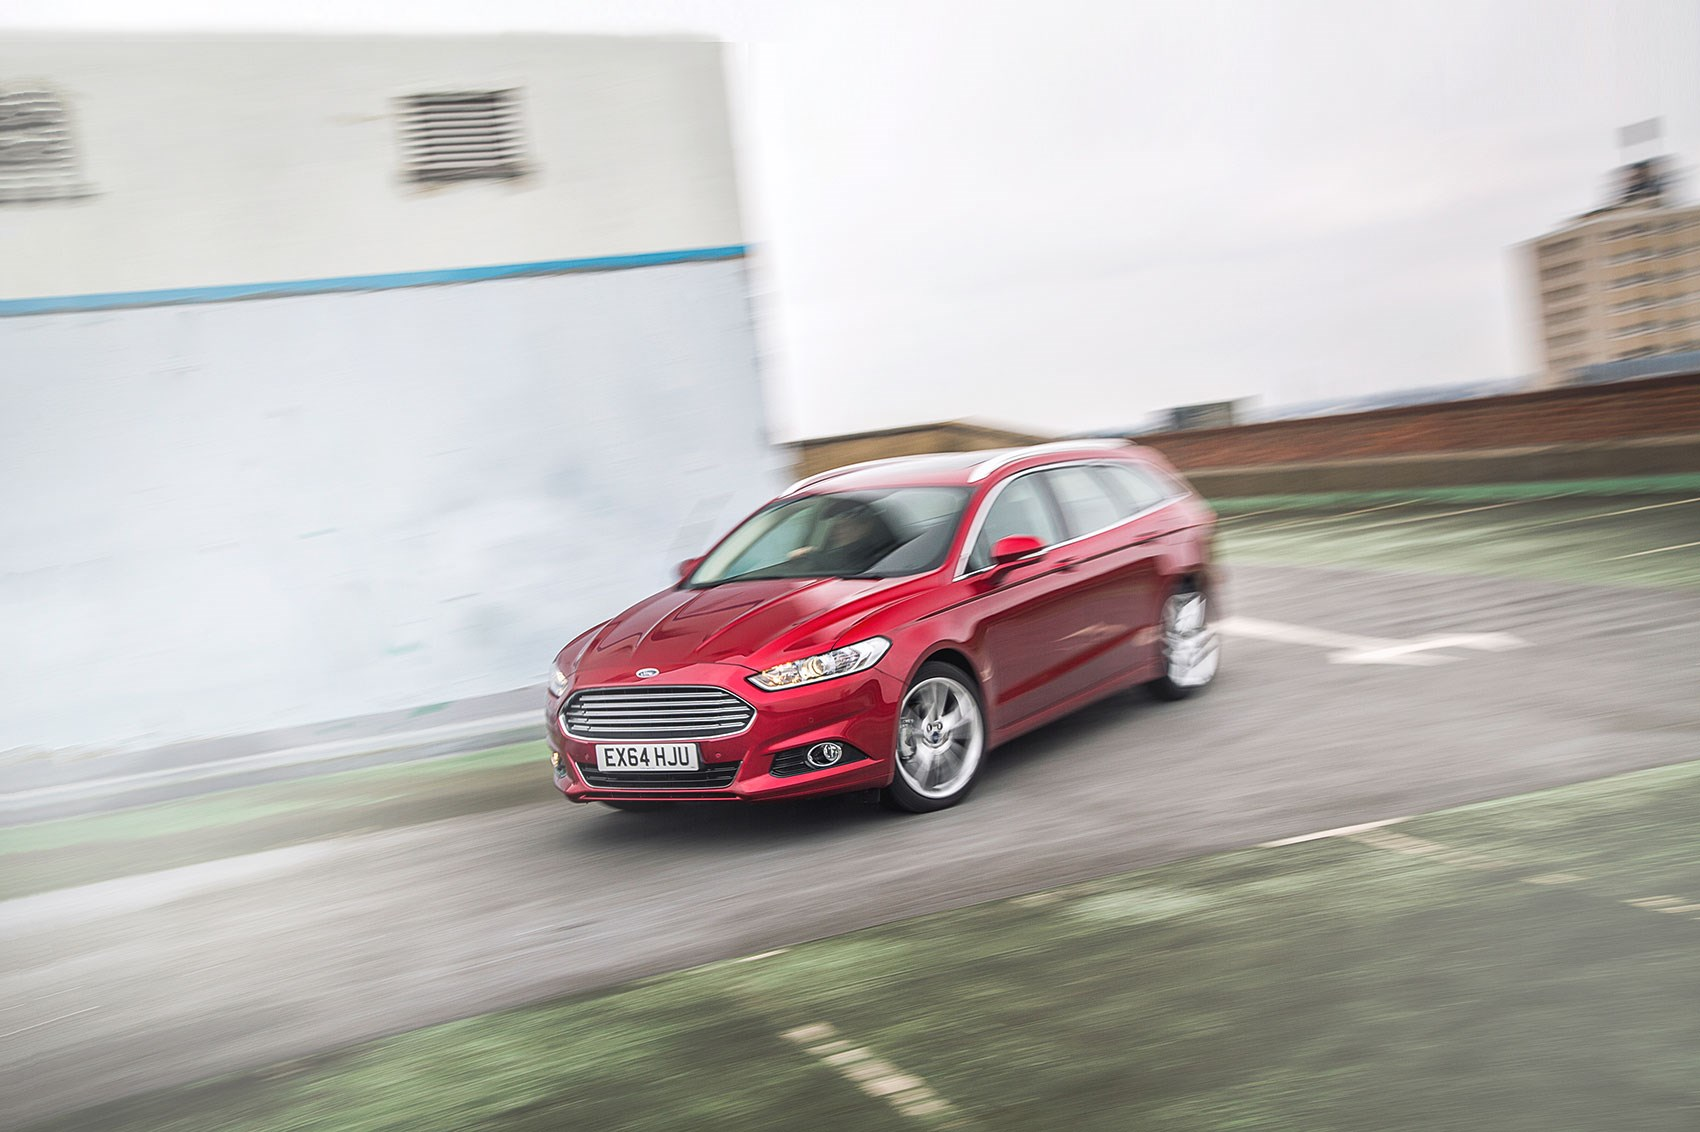 Mondeo a big car these days at 4.9m long Ford ... & Ford Mondeo Estate 2.0 TDCI Titanium (2016) long-term test review ... markmcfarlin.com